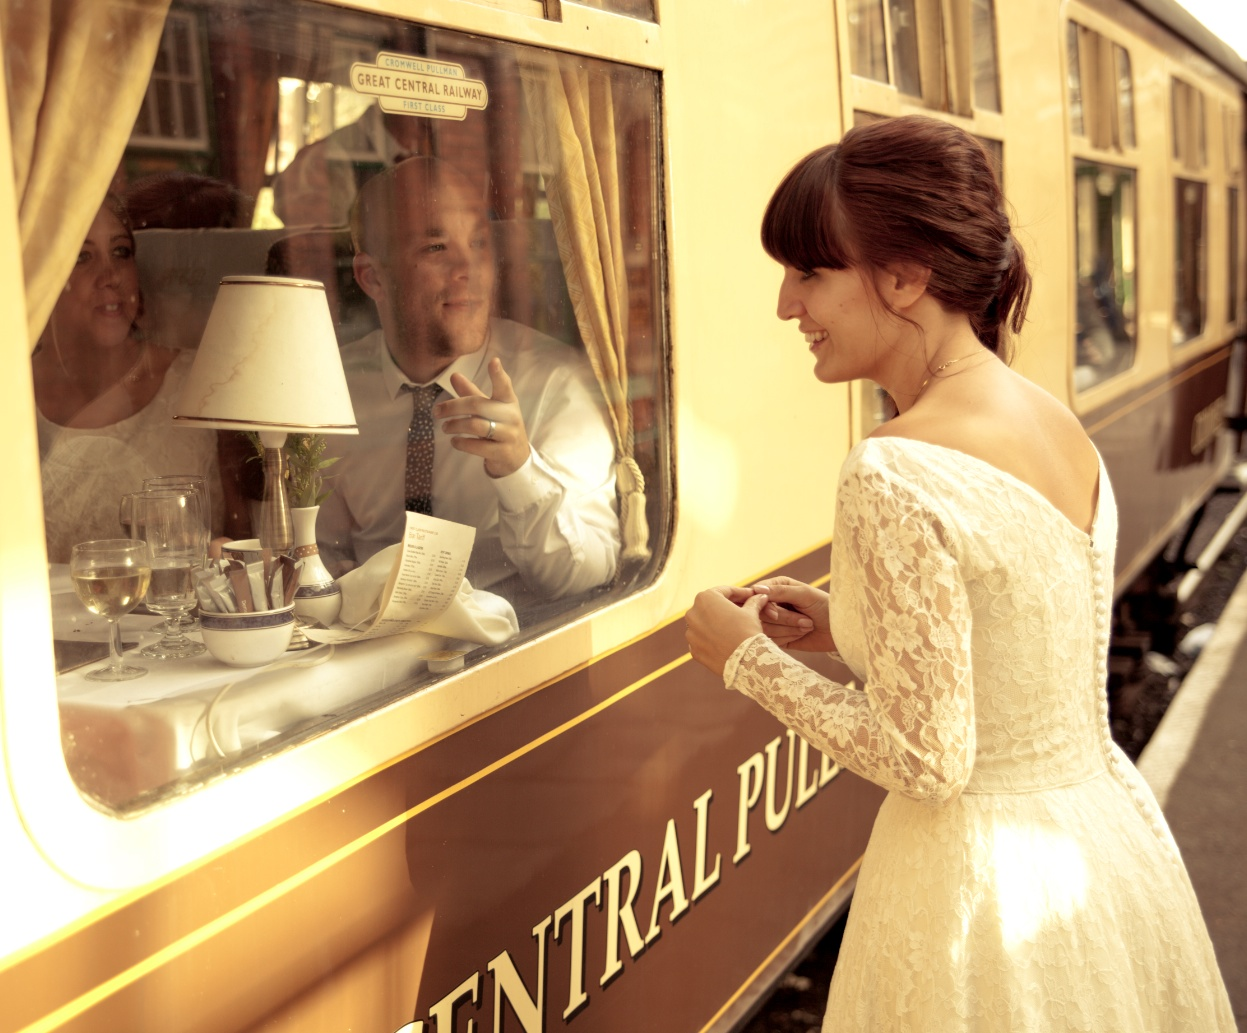 Weddings | Great Central Railway – The UK's Only Main Line Heritage Railway